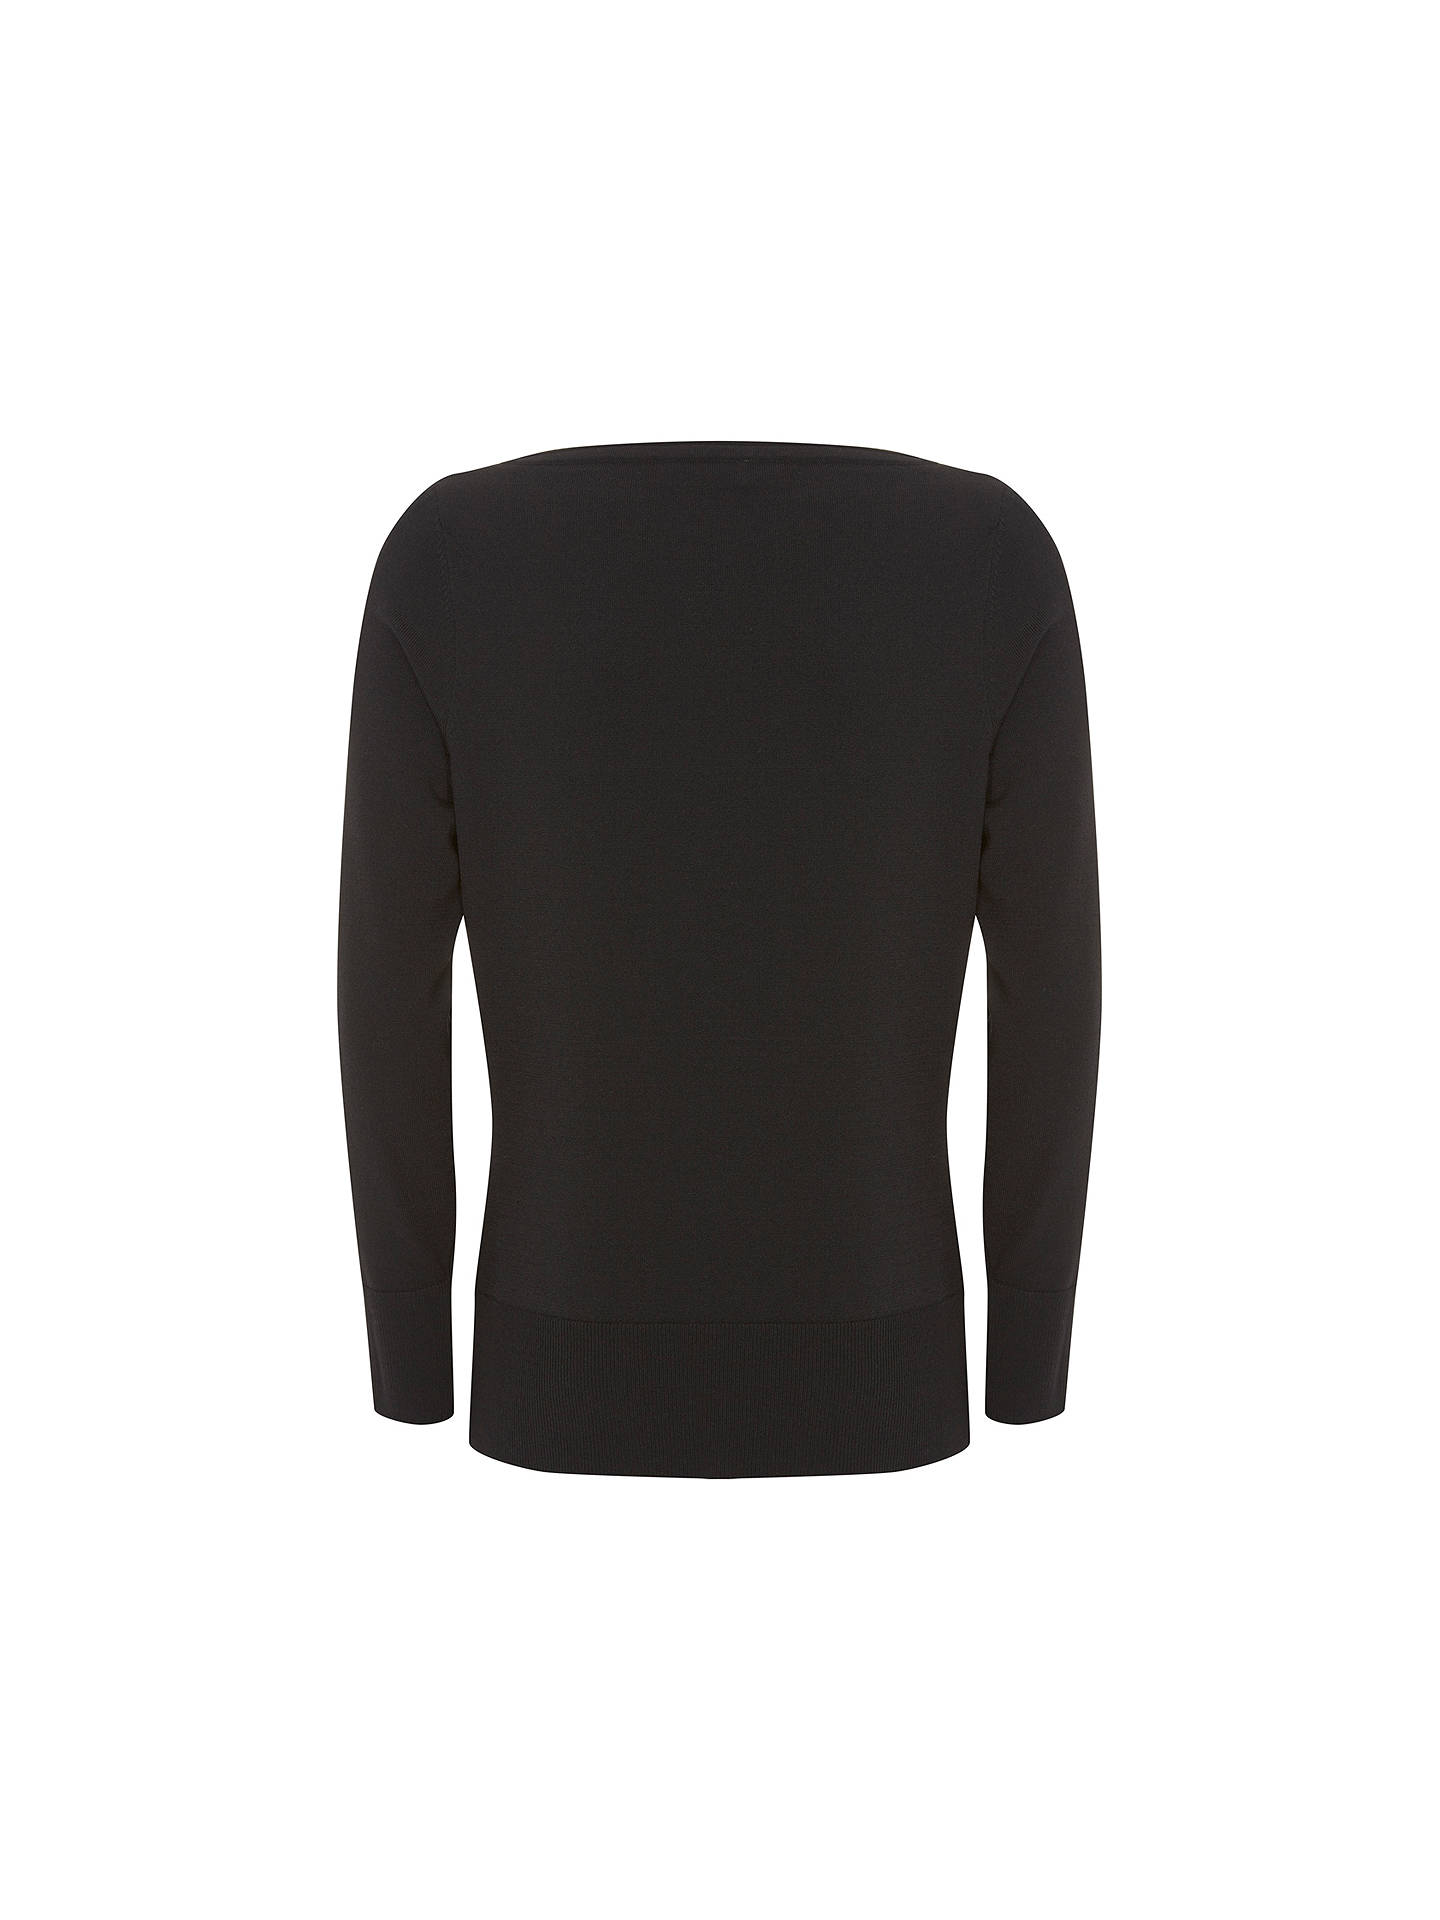 BuyMint Velvet Dobby Insert Jumper, Black, 6 Online at johnlewis.com